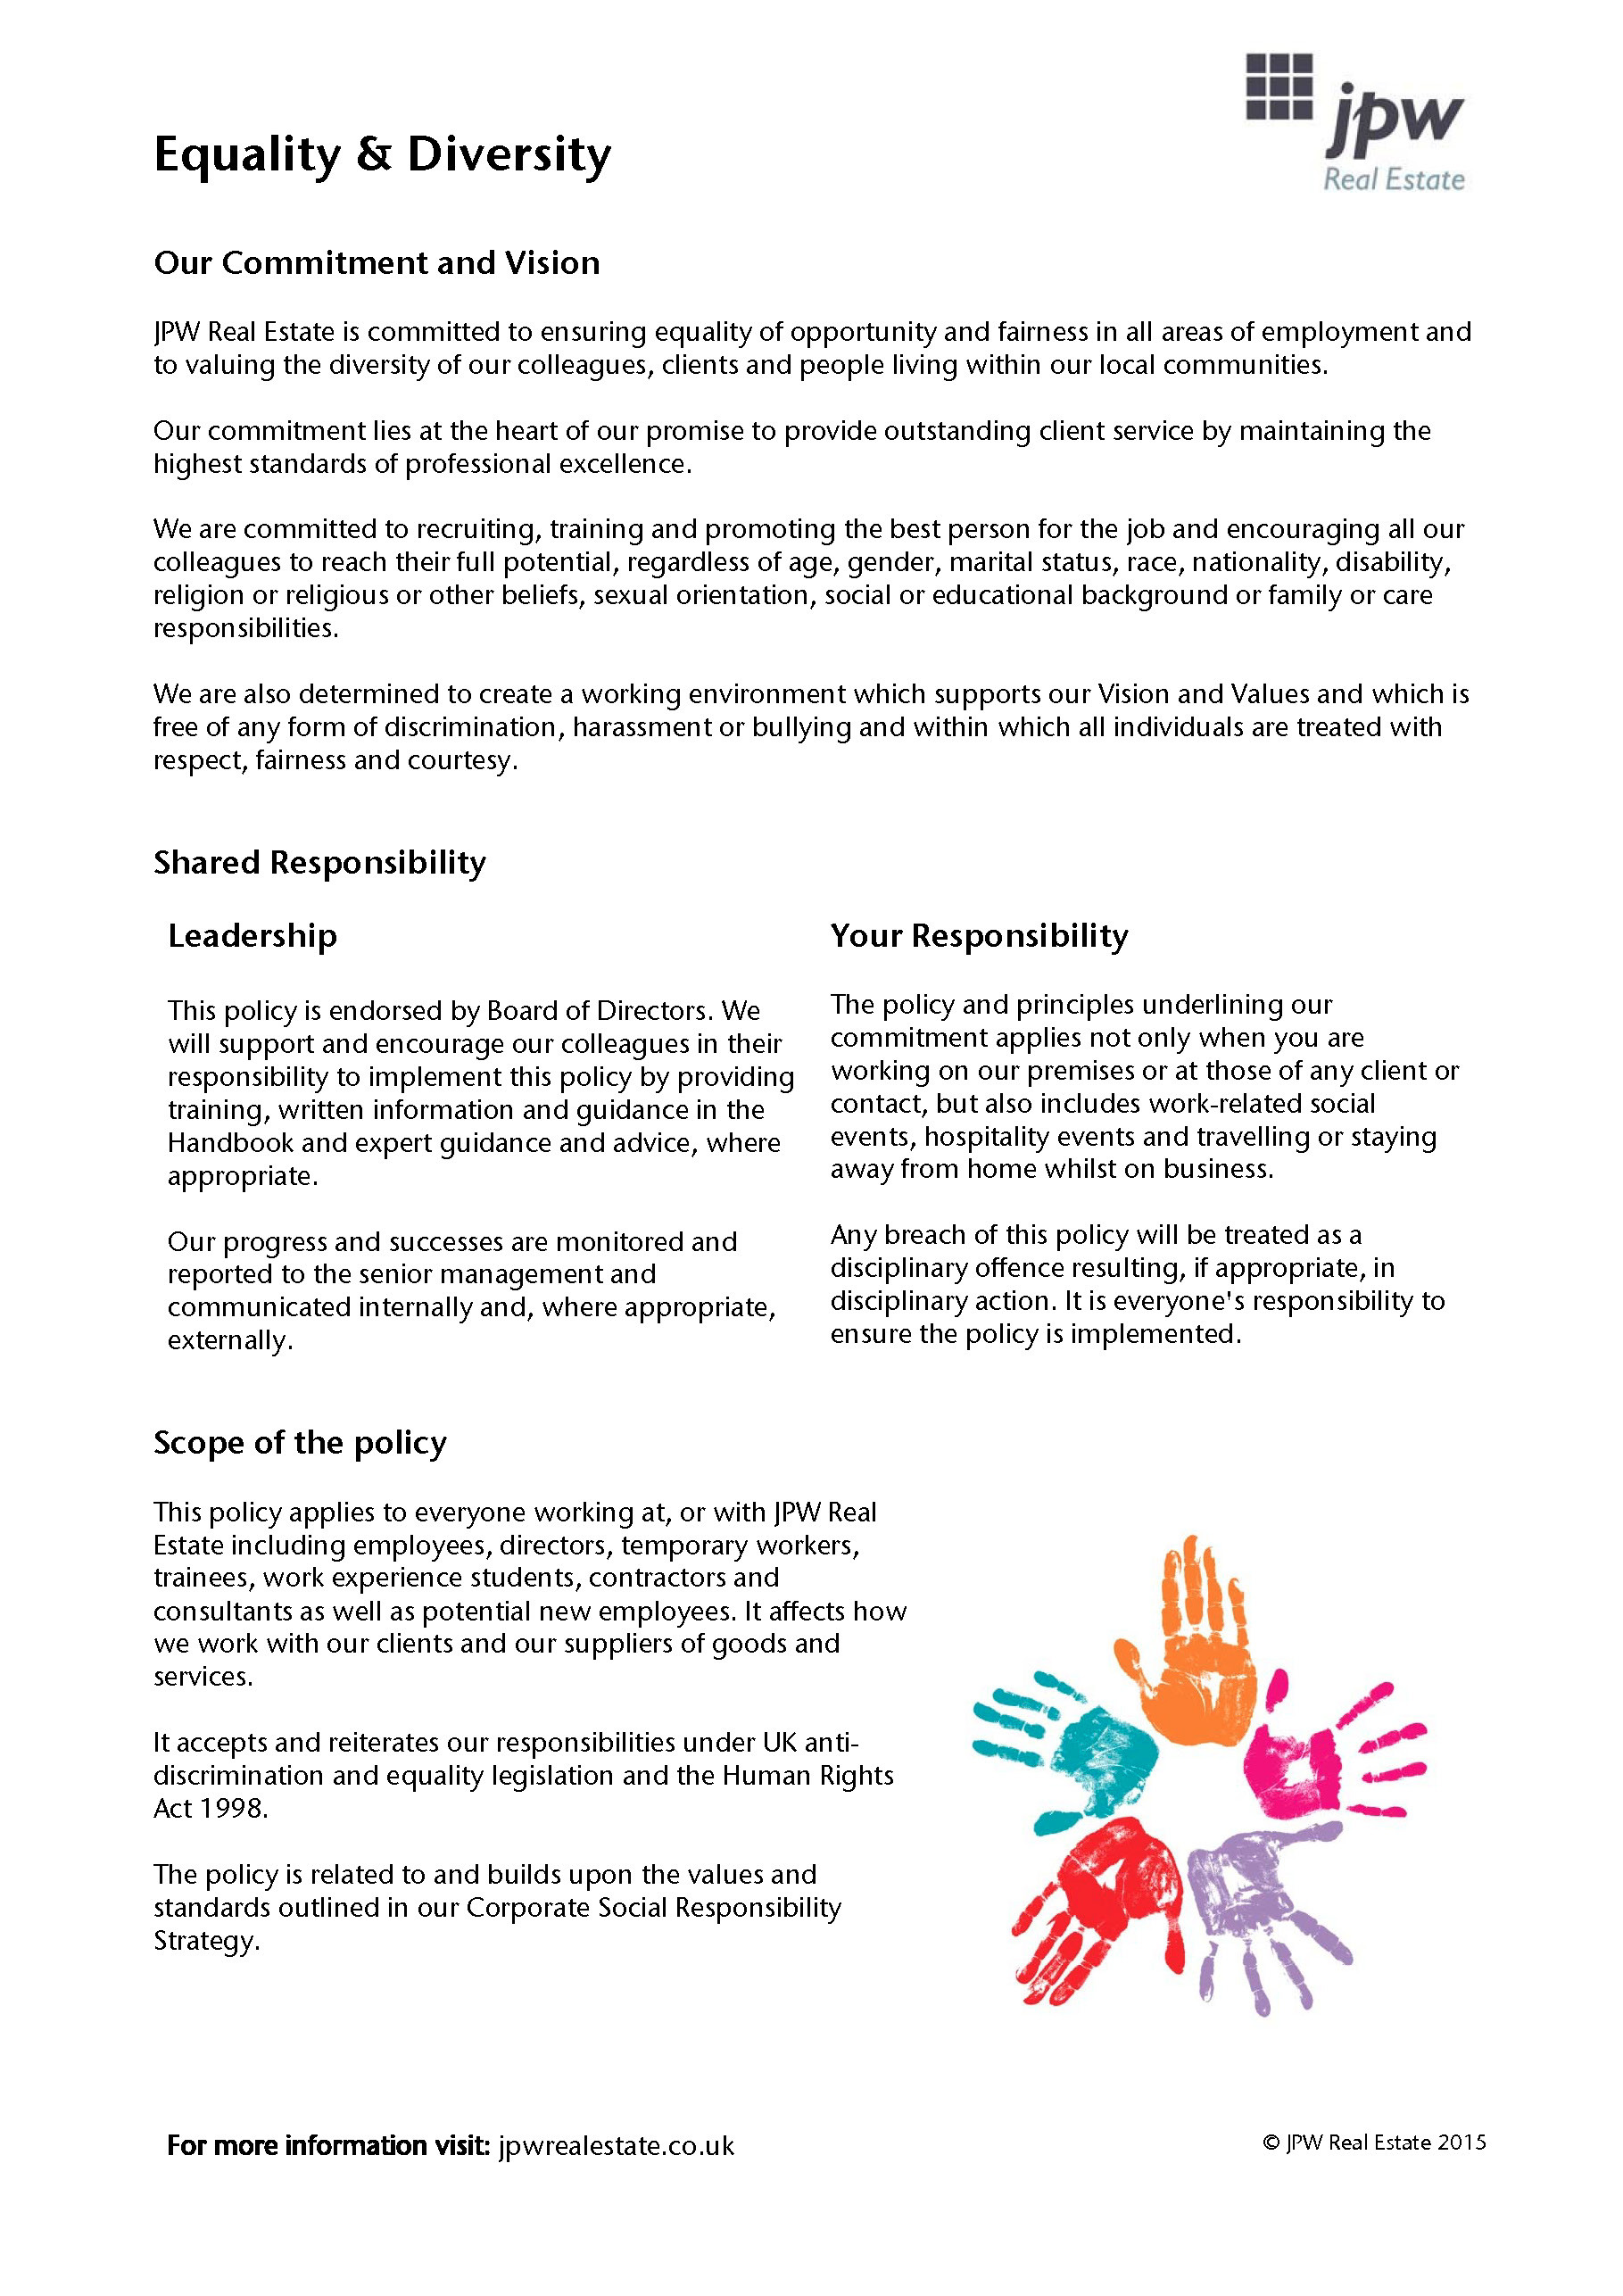 Jpw Equality Diversity Policy 2015 Page 1